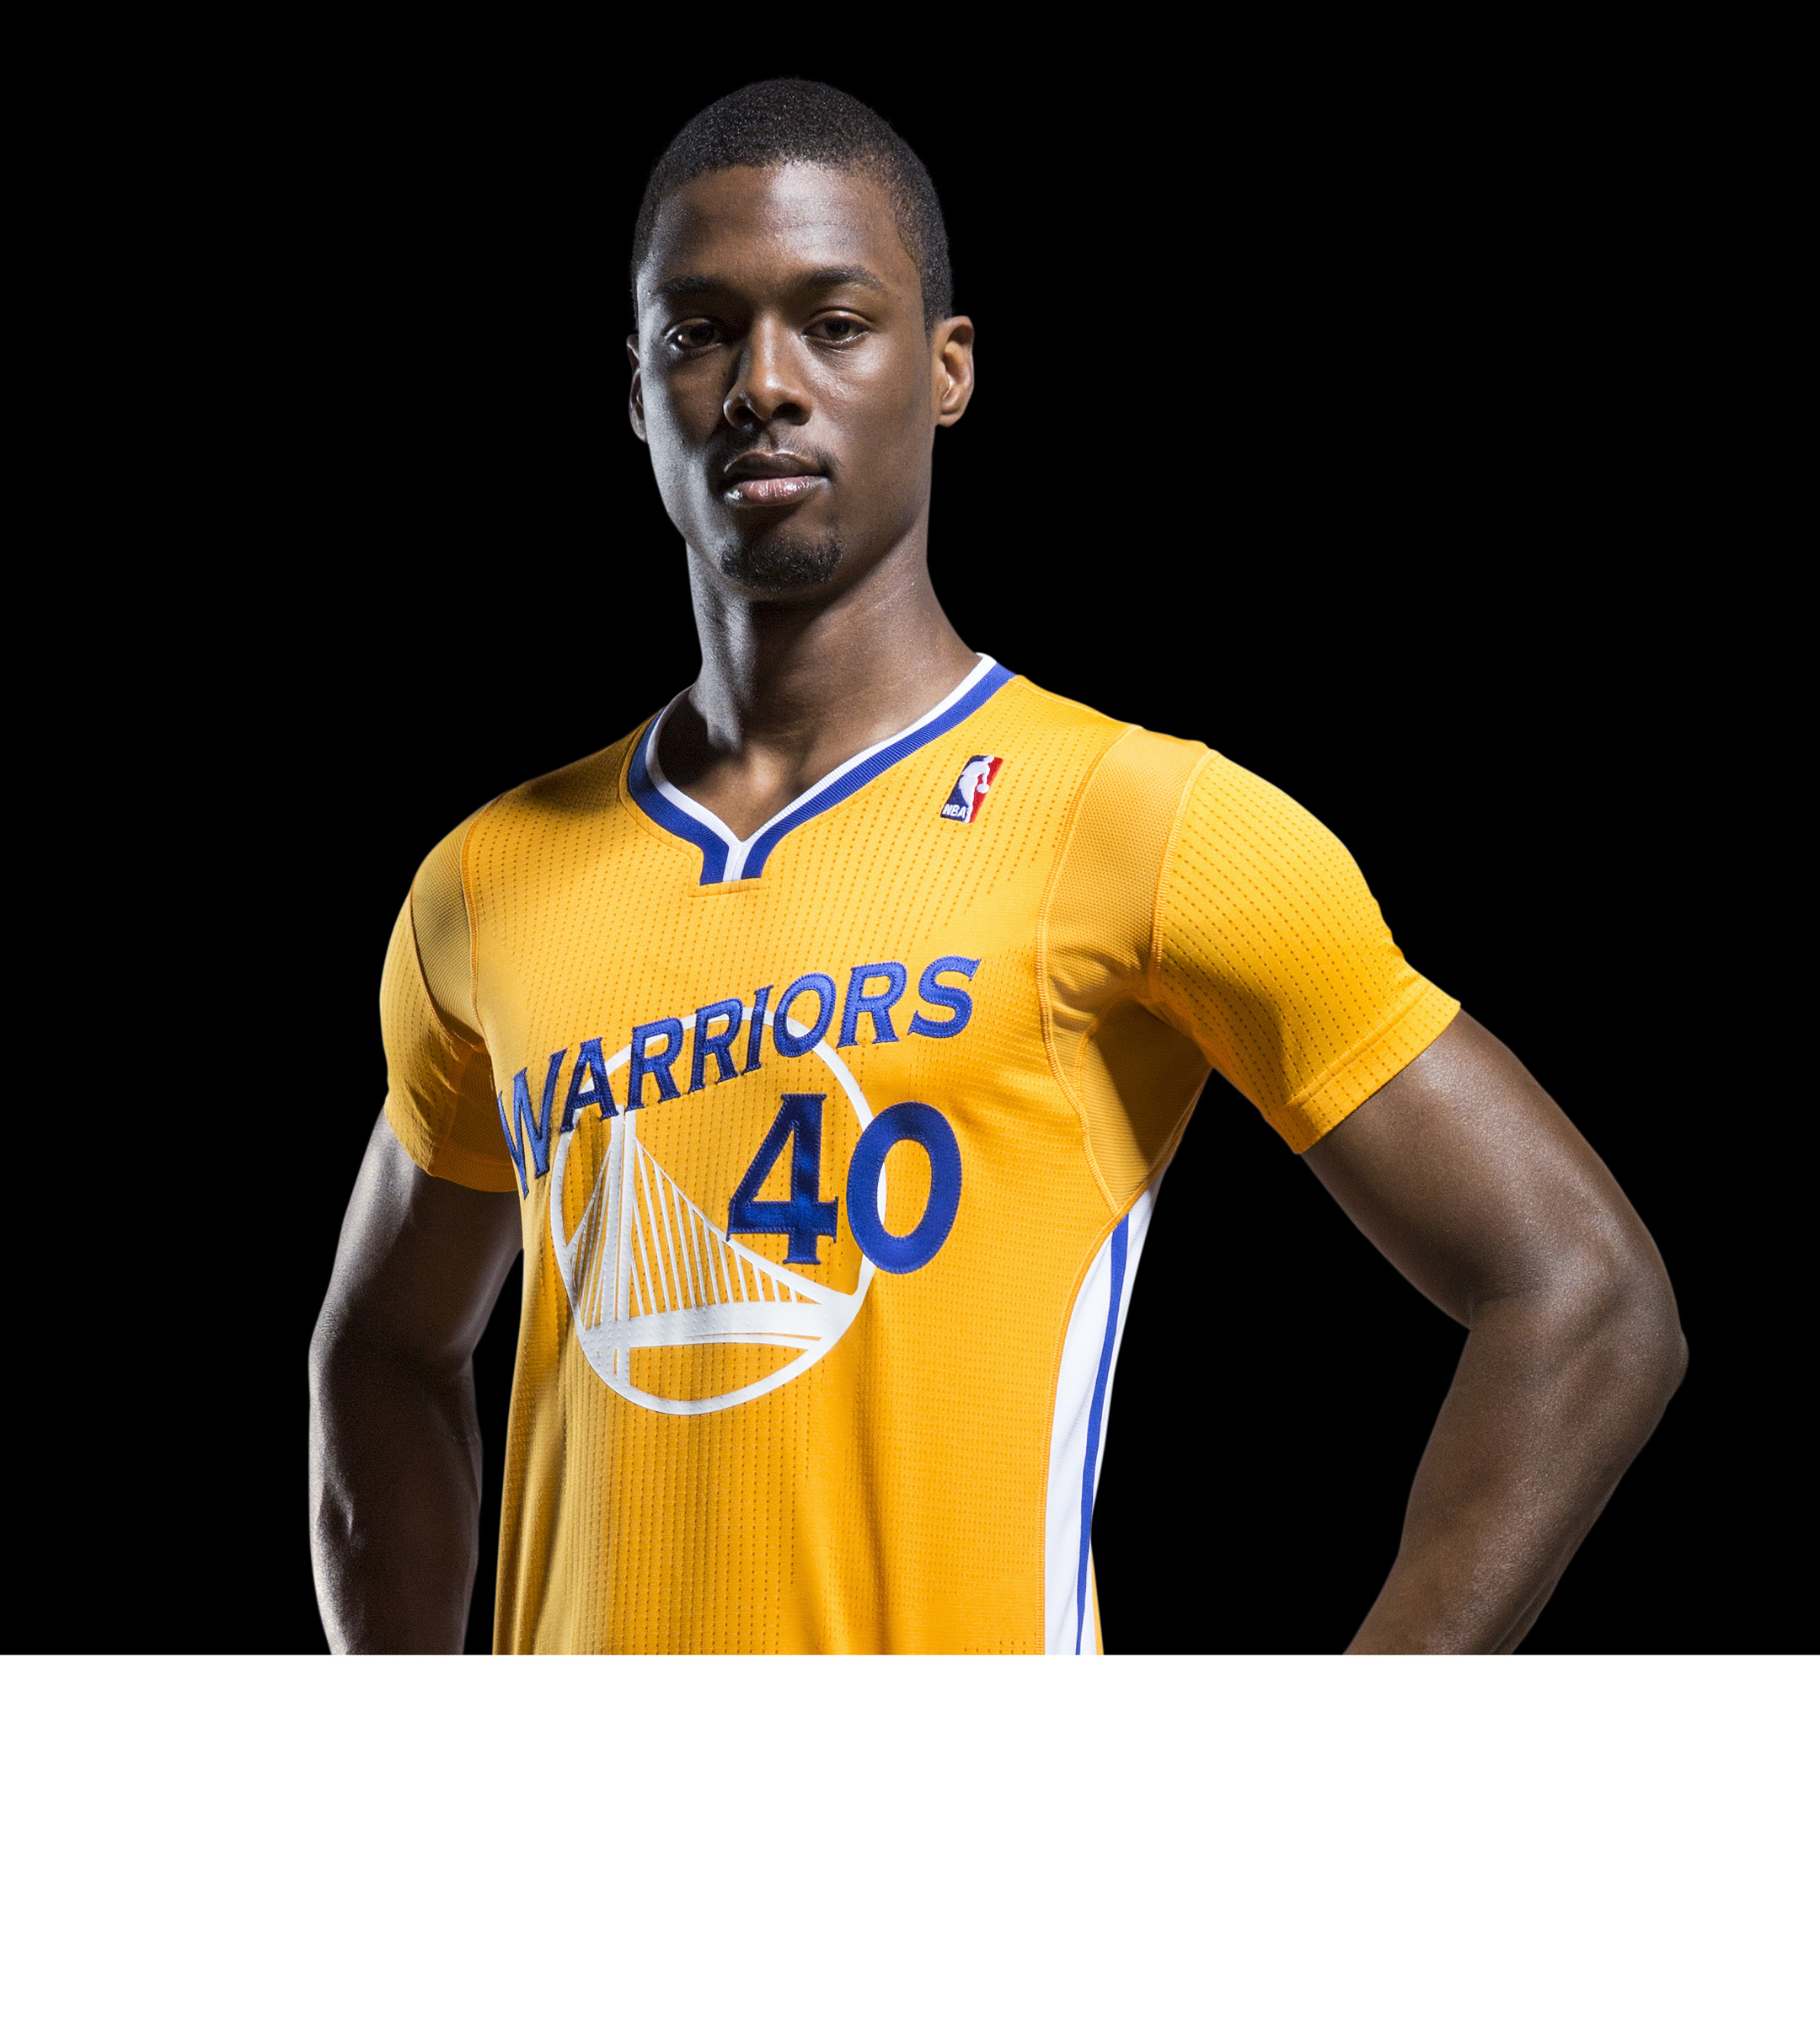 2013-14 Alternate Jerseys (Courtesy of Adidas)